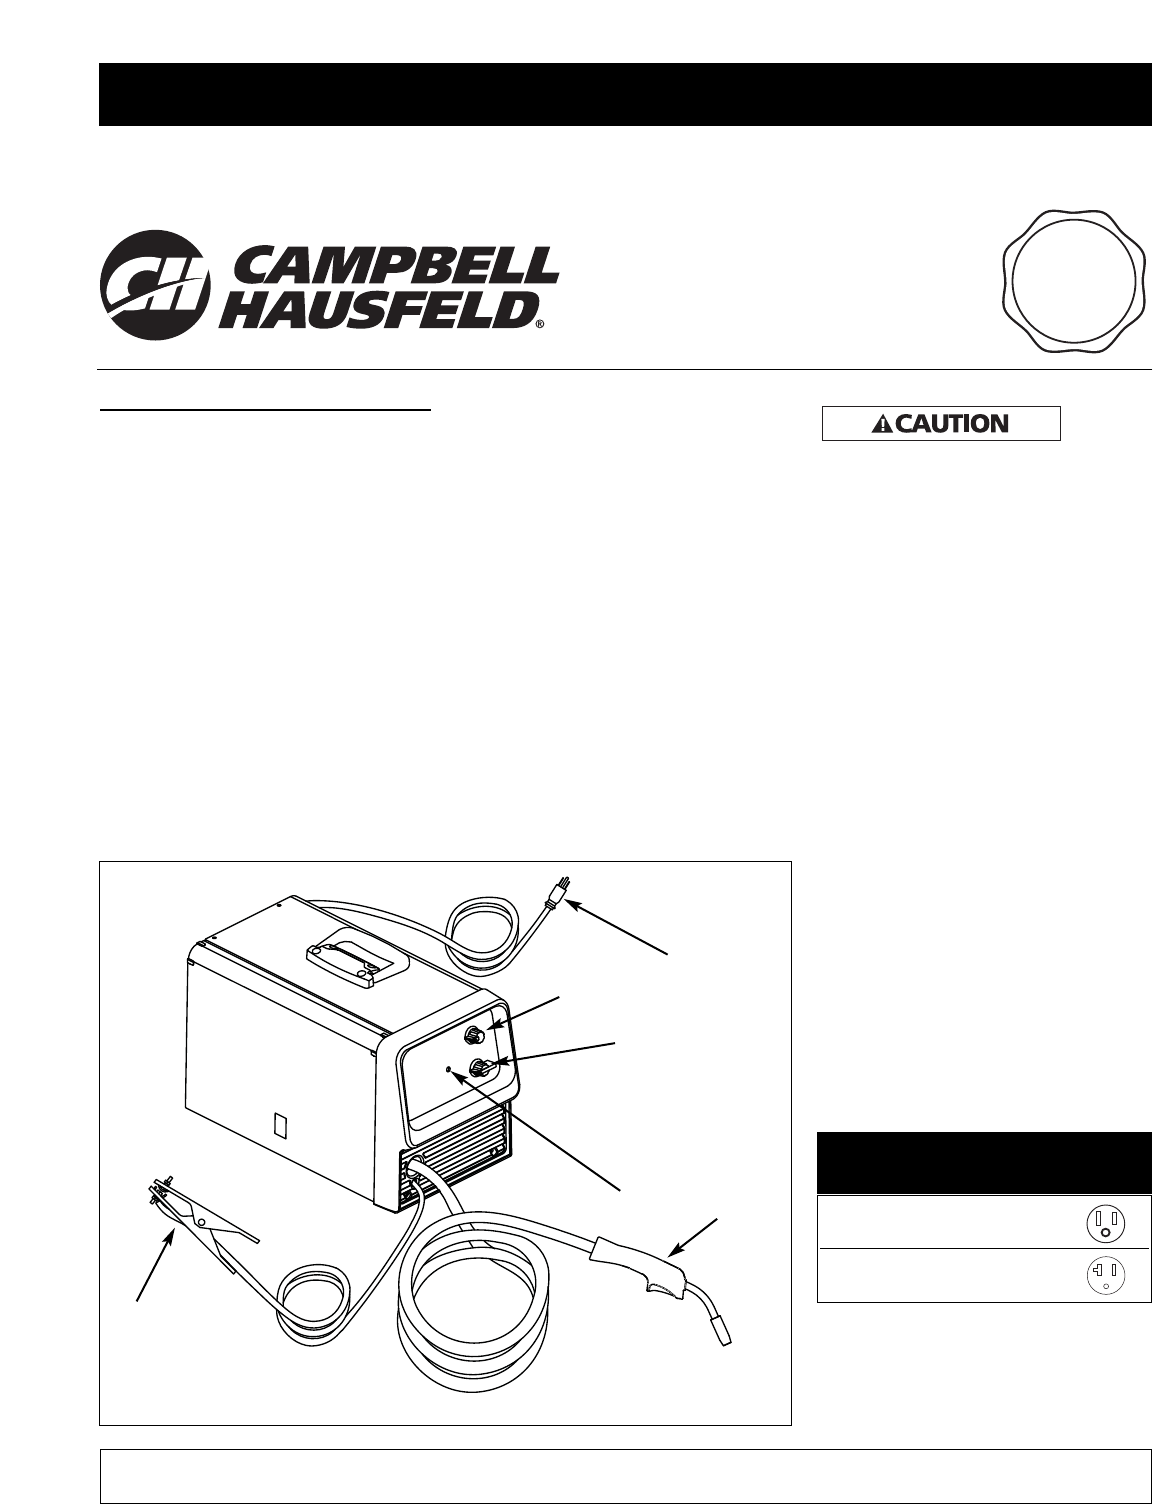 Wiring Diagram Campbell Hausfeld Page 2 And Air Compressor Welder Wg4130 User Guide Manualsonline Com Source Phase Motor Diagrams On Dayton